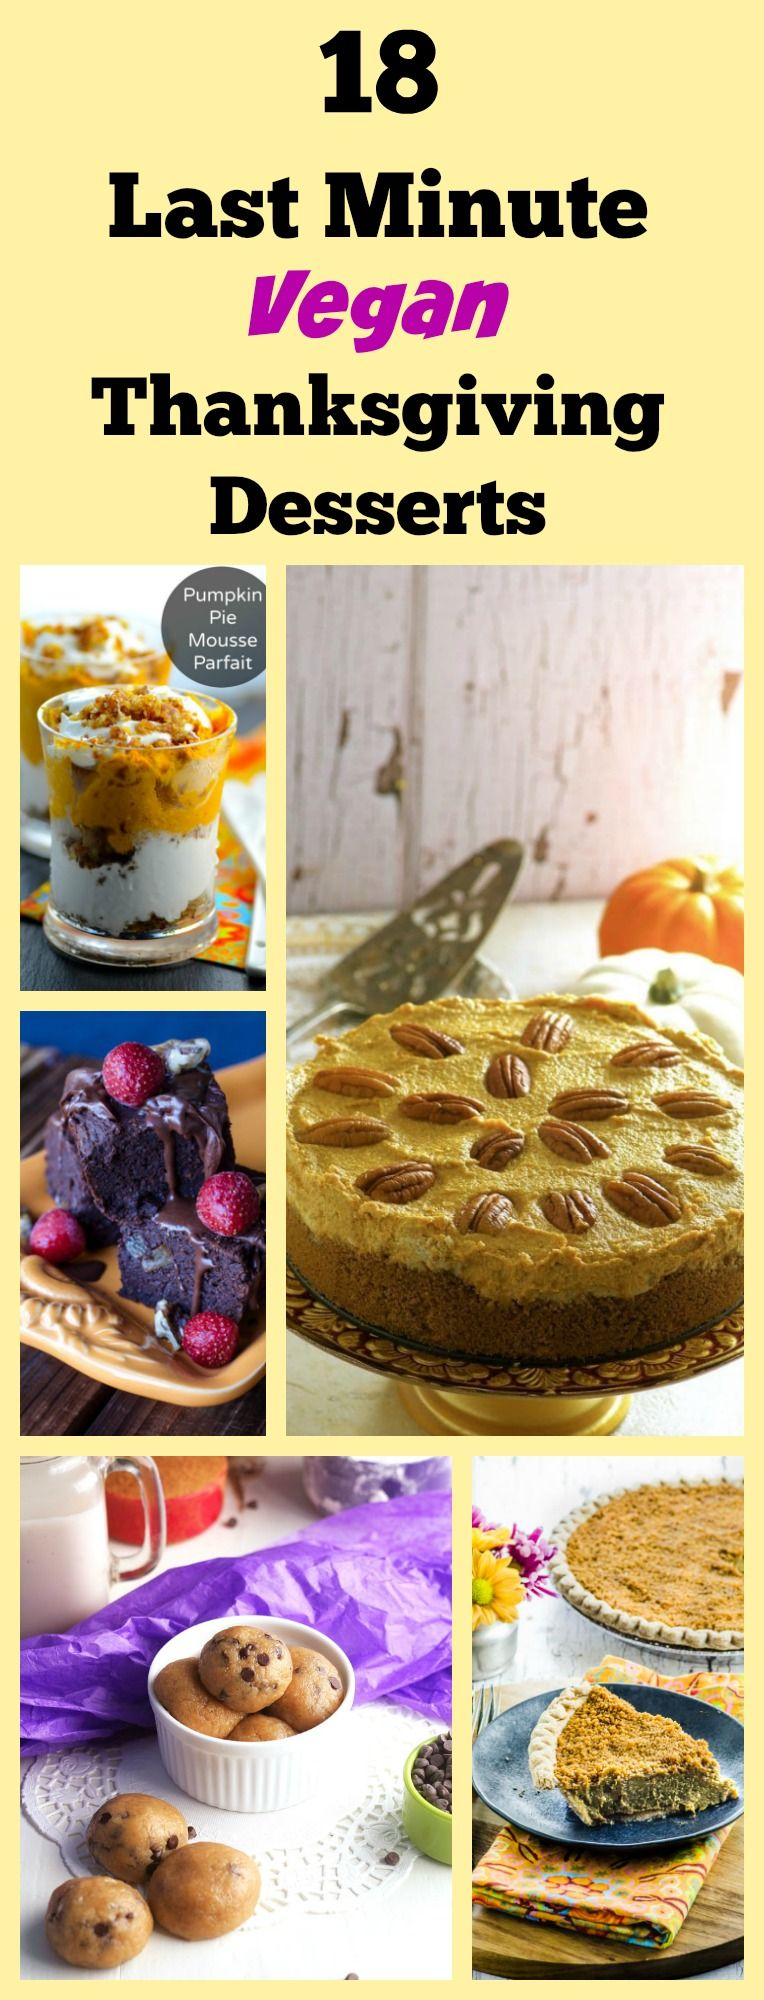 These  Last Minute Vegan Thanksgiving Dessert Recipes Are Quick And Easy To Make And Good For You Too